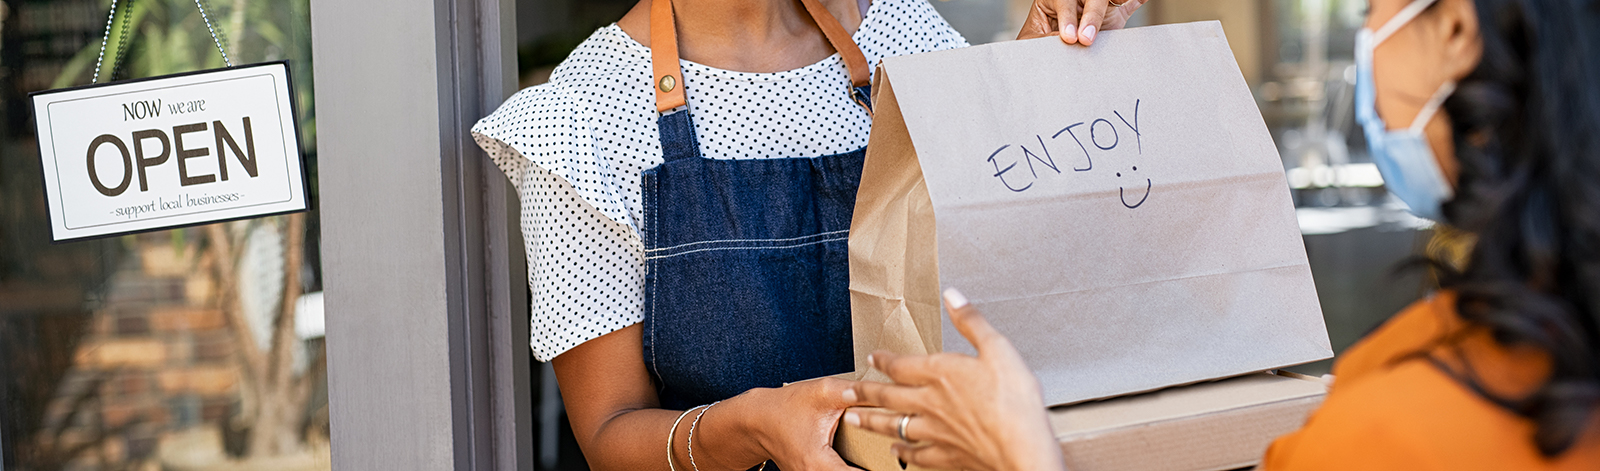 Woman wearing a mask delivering takeout food